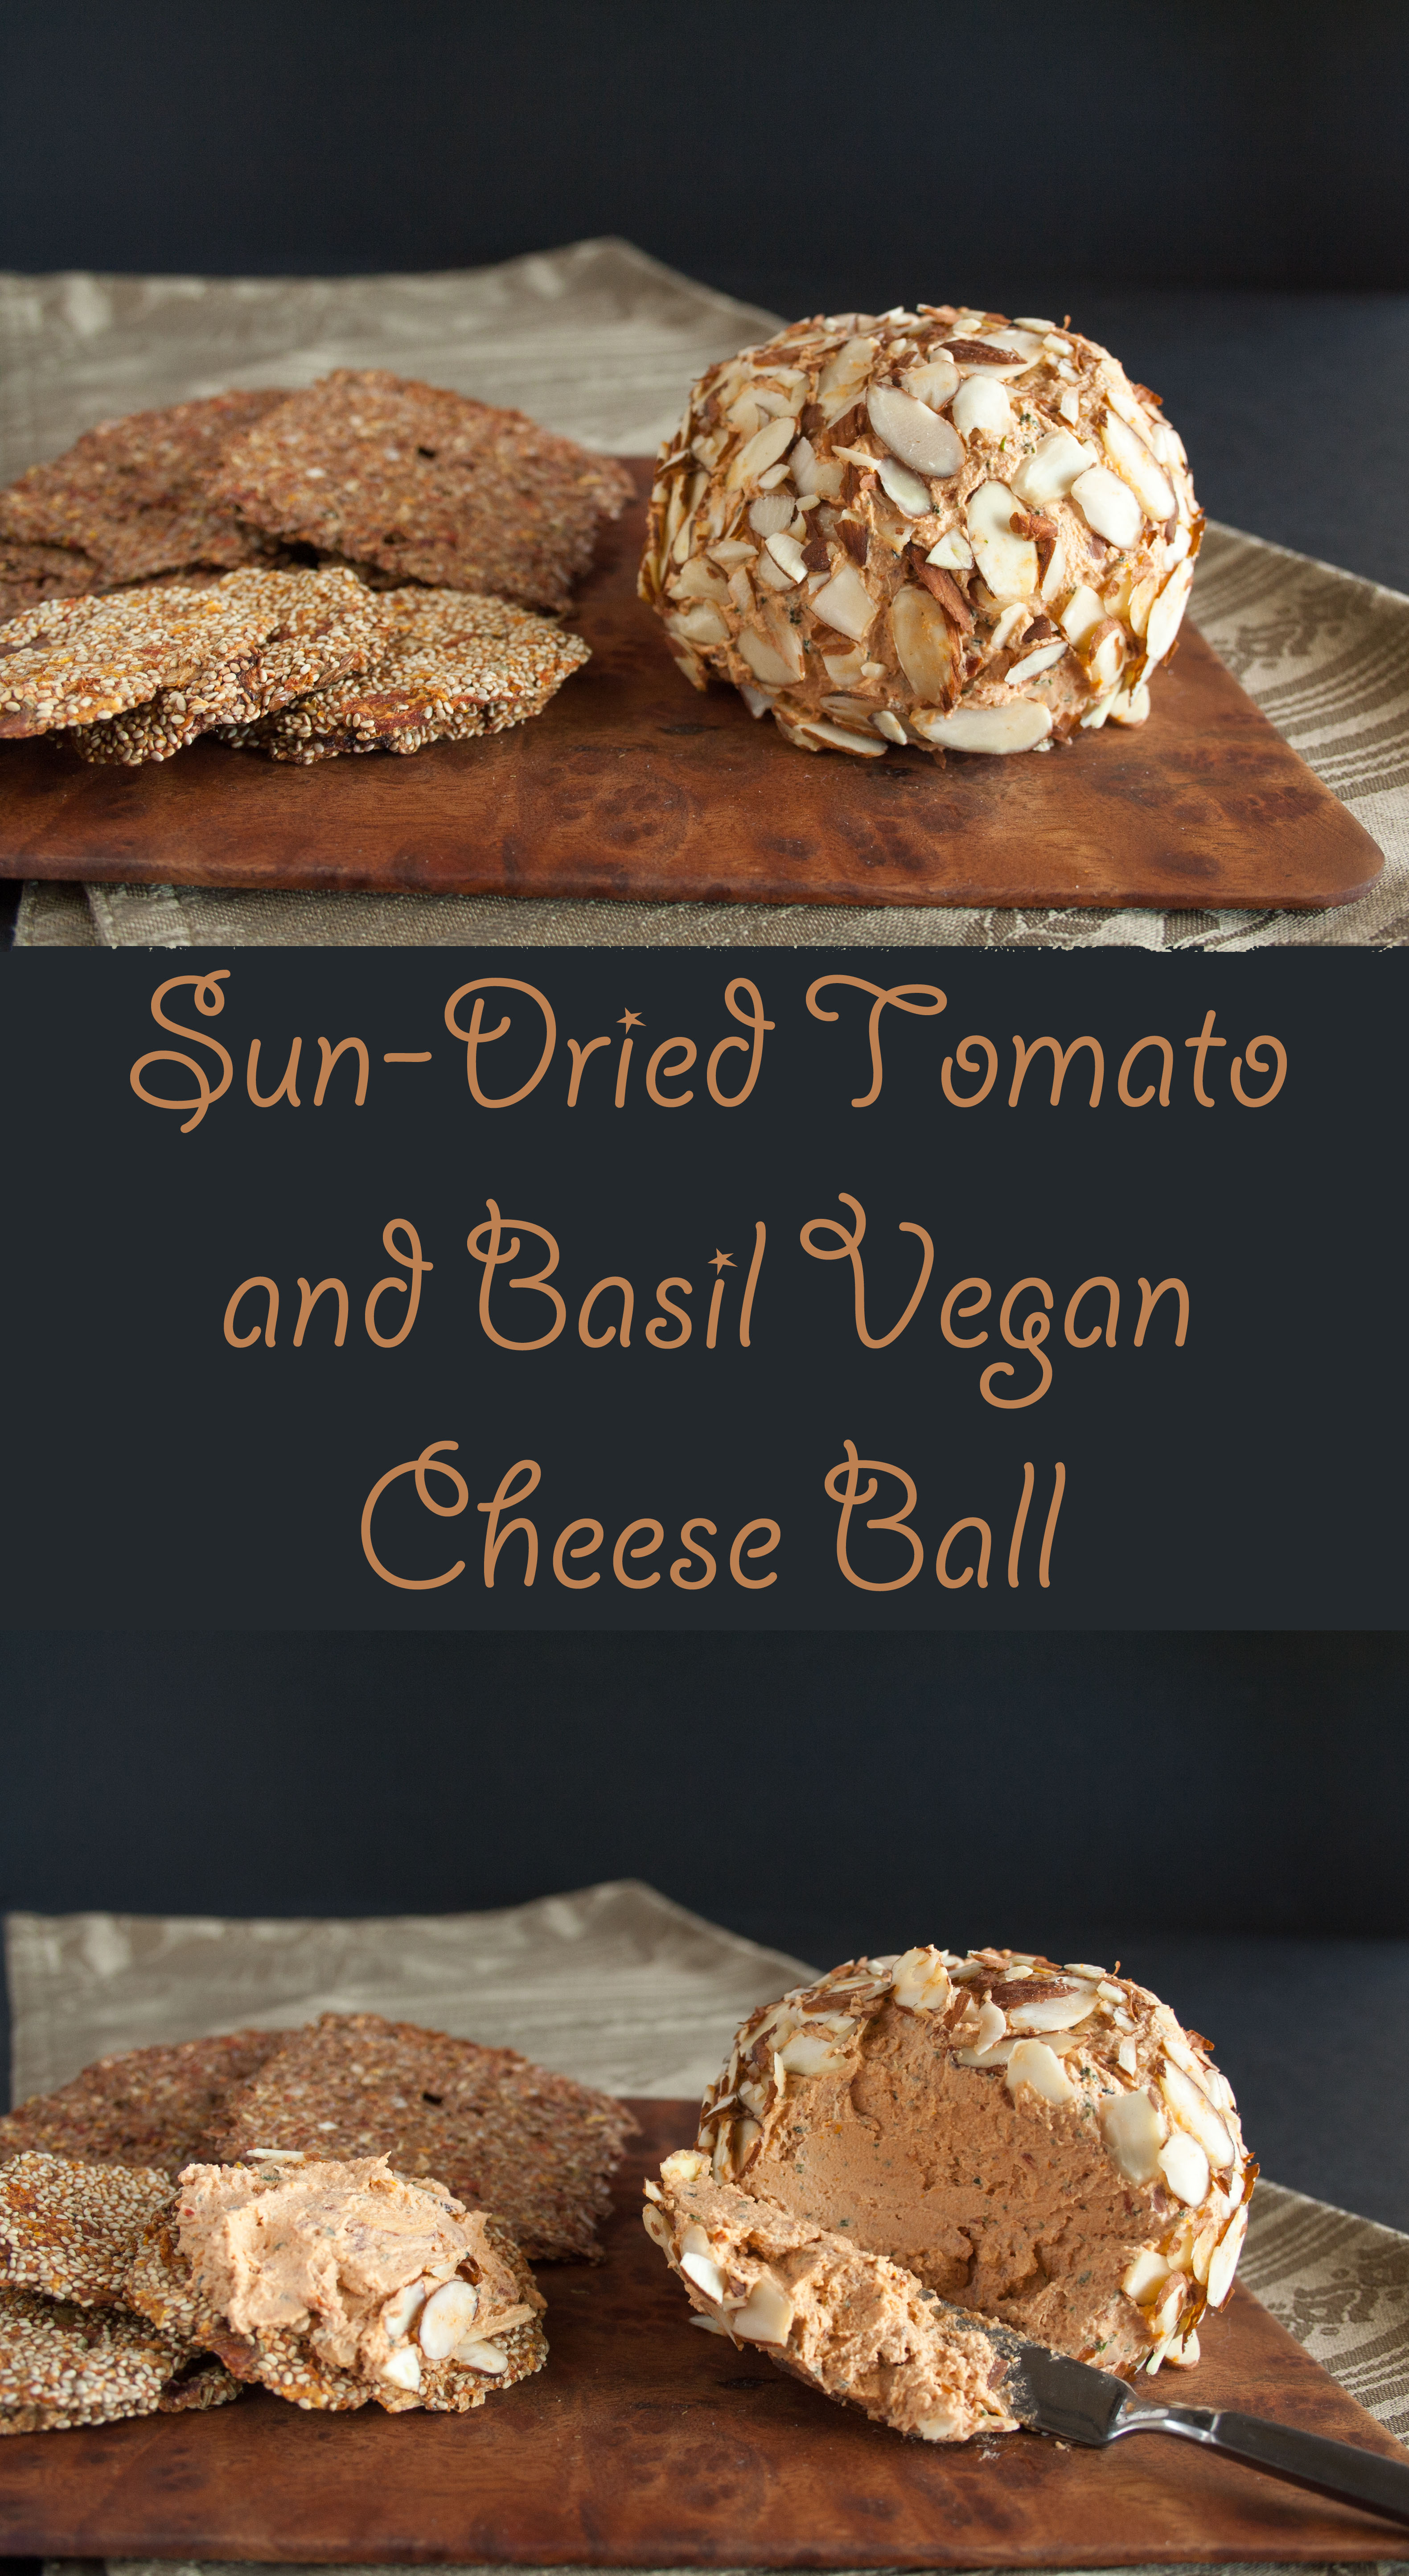 Sun-Dried Tomato and Basil Vegan Cheese Ball collage photo with text in between two photos.